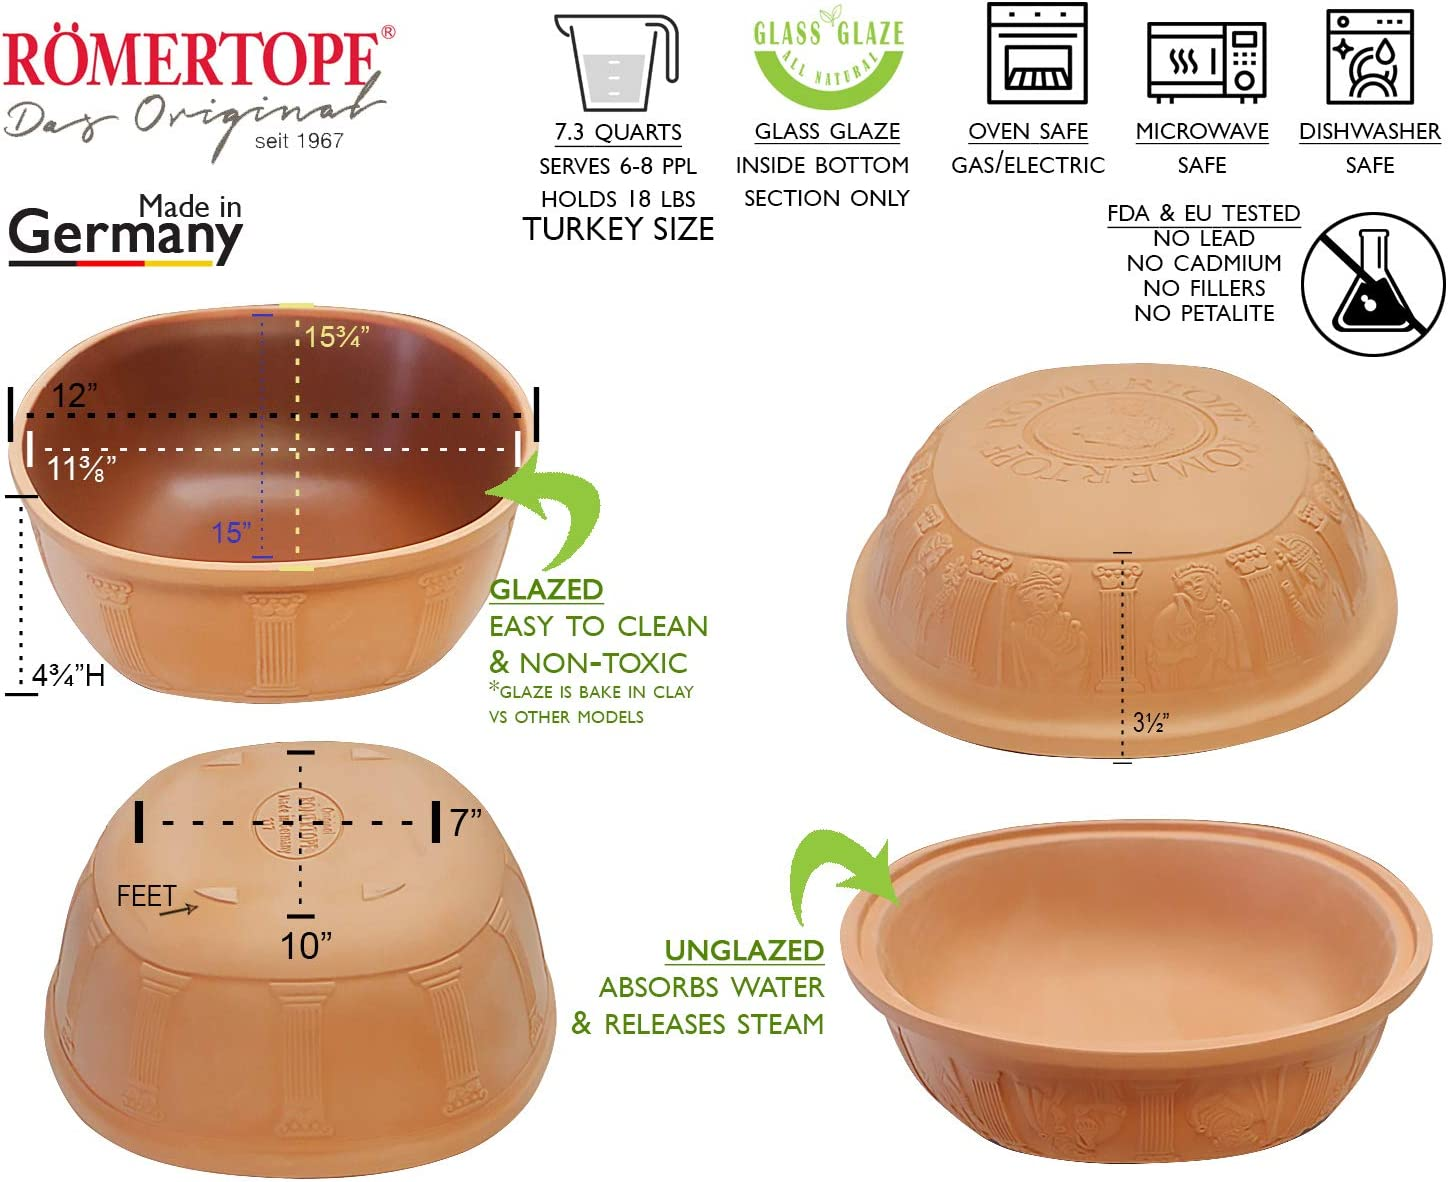 Romertopf Extra Large for Turkey Glazed Clay Roaster